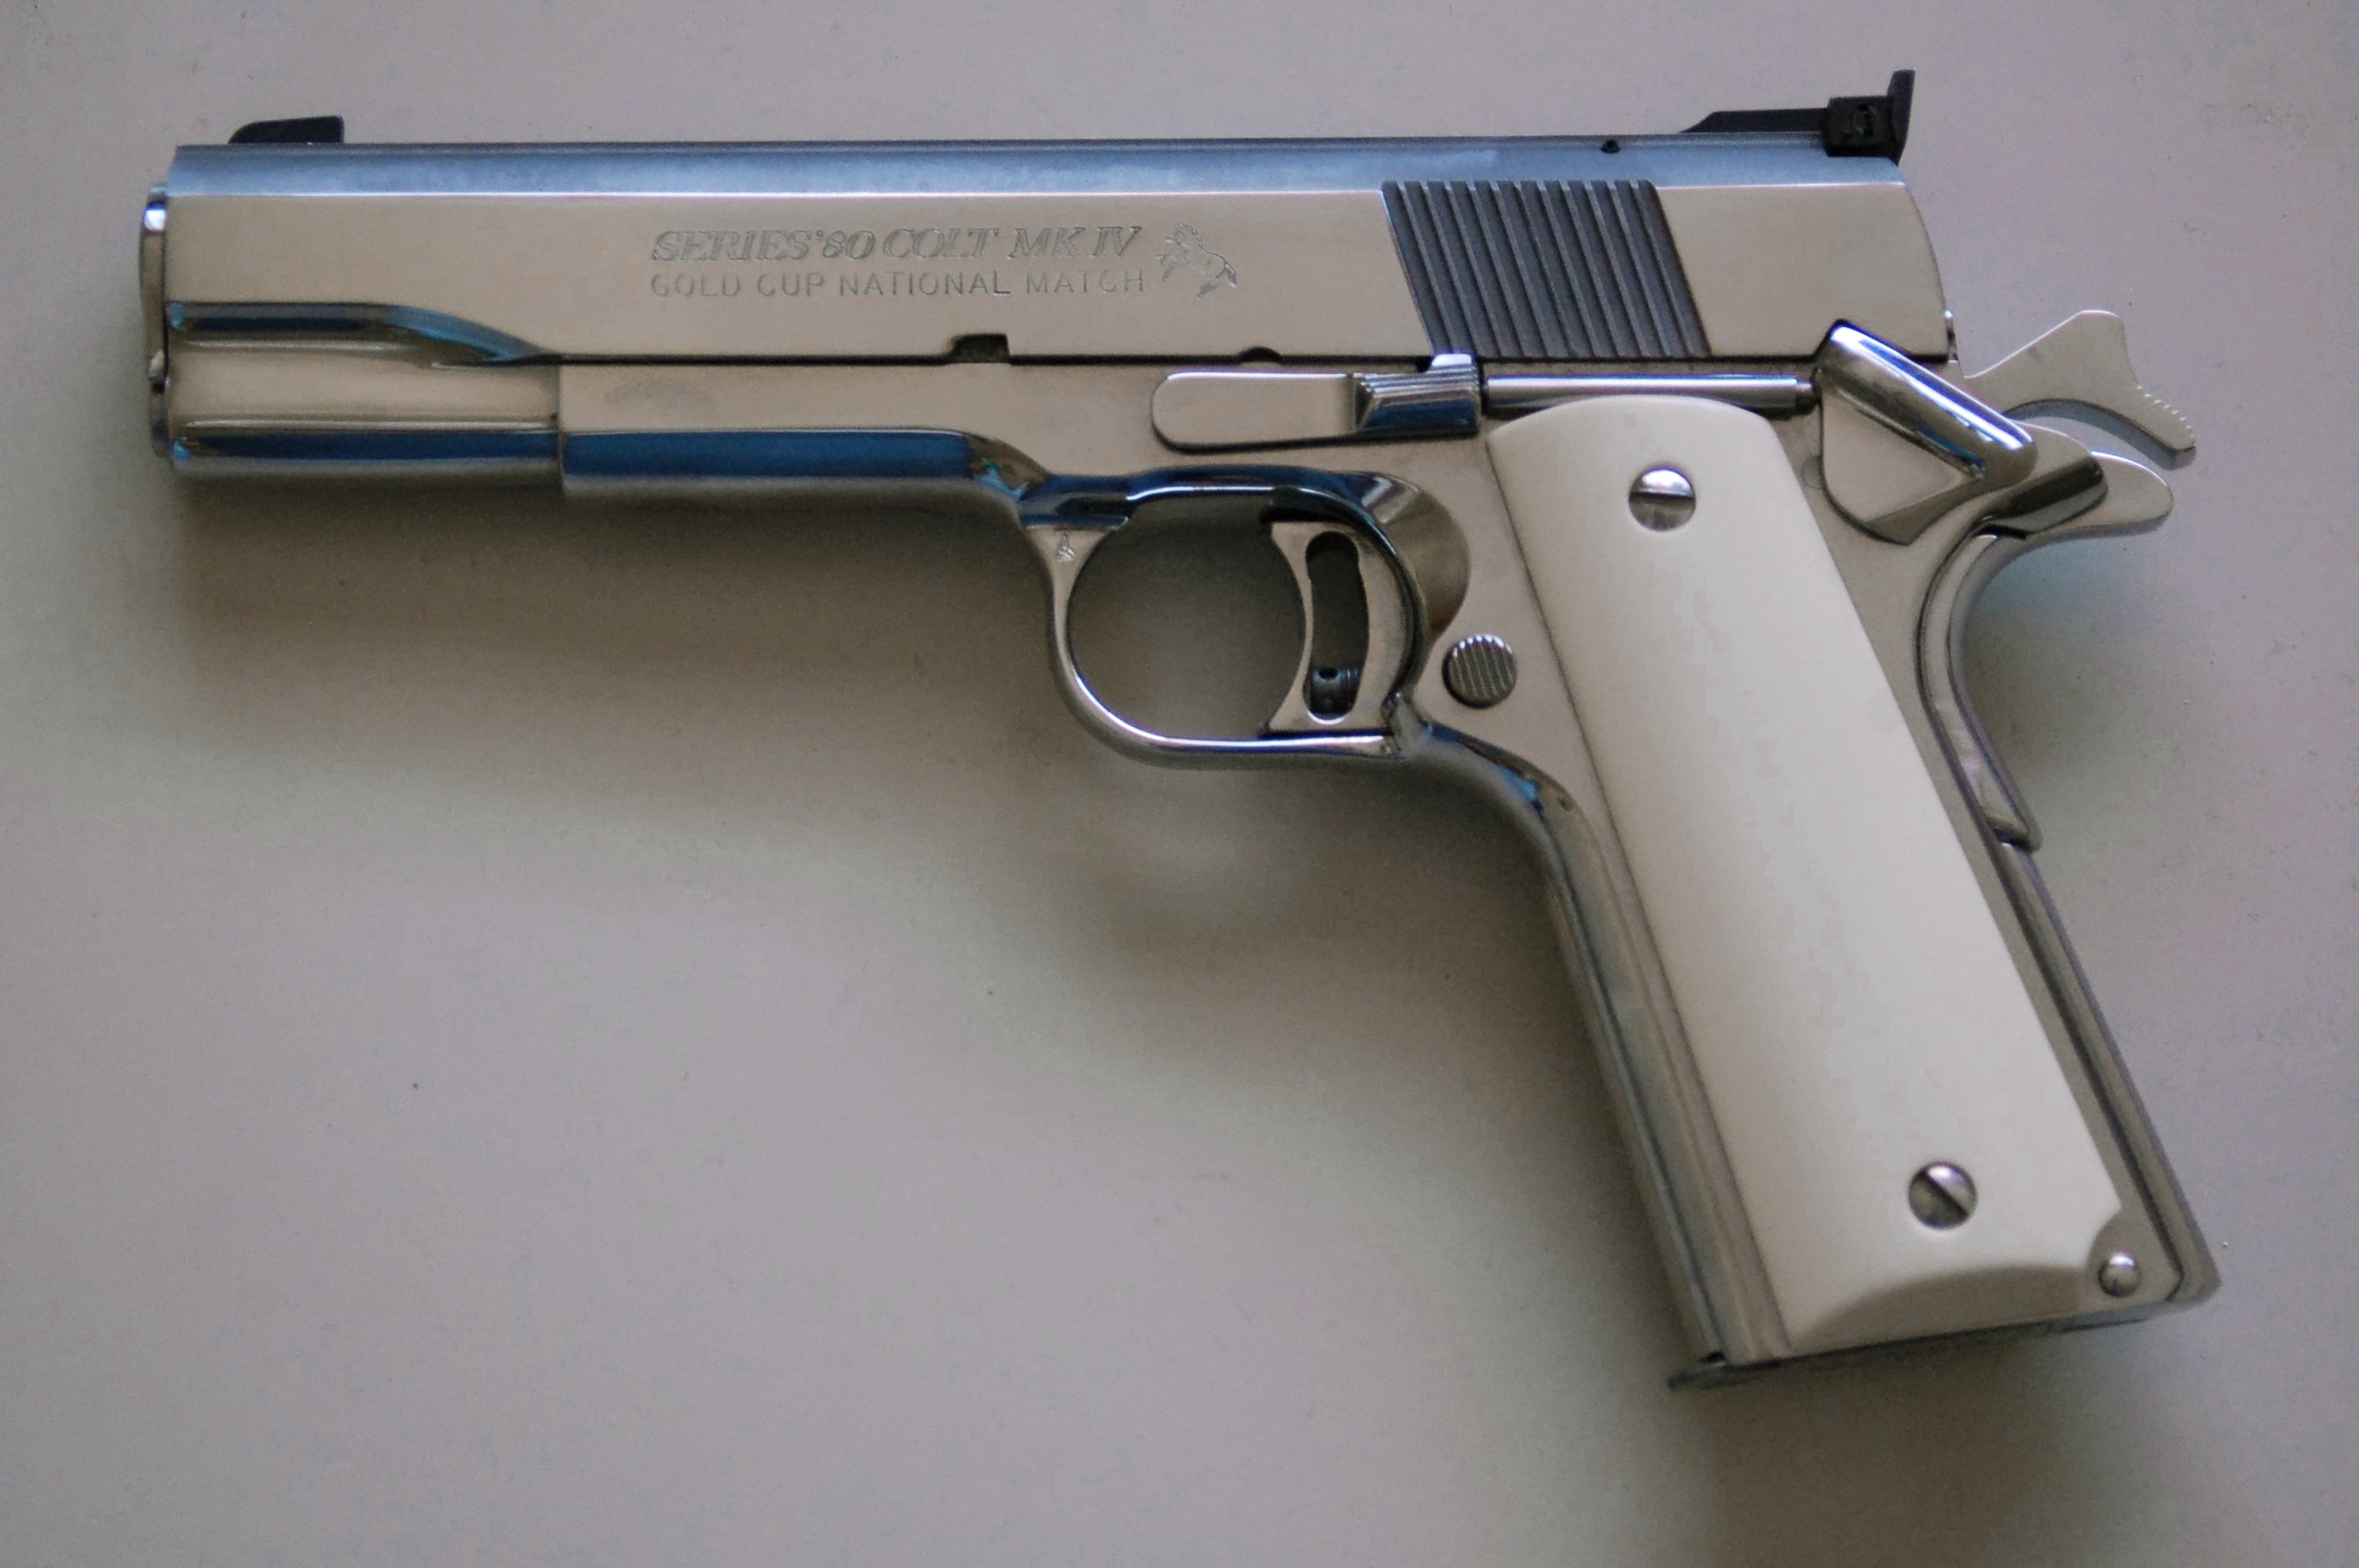 Amazing Colt Pistol Pictures & Backgrounds